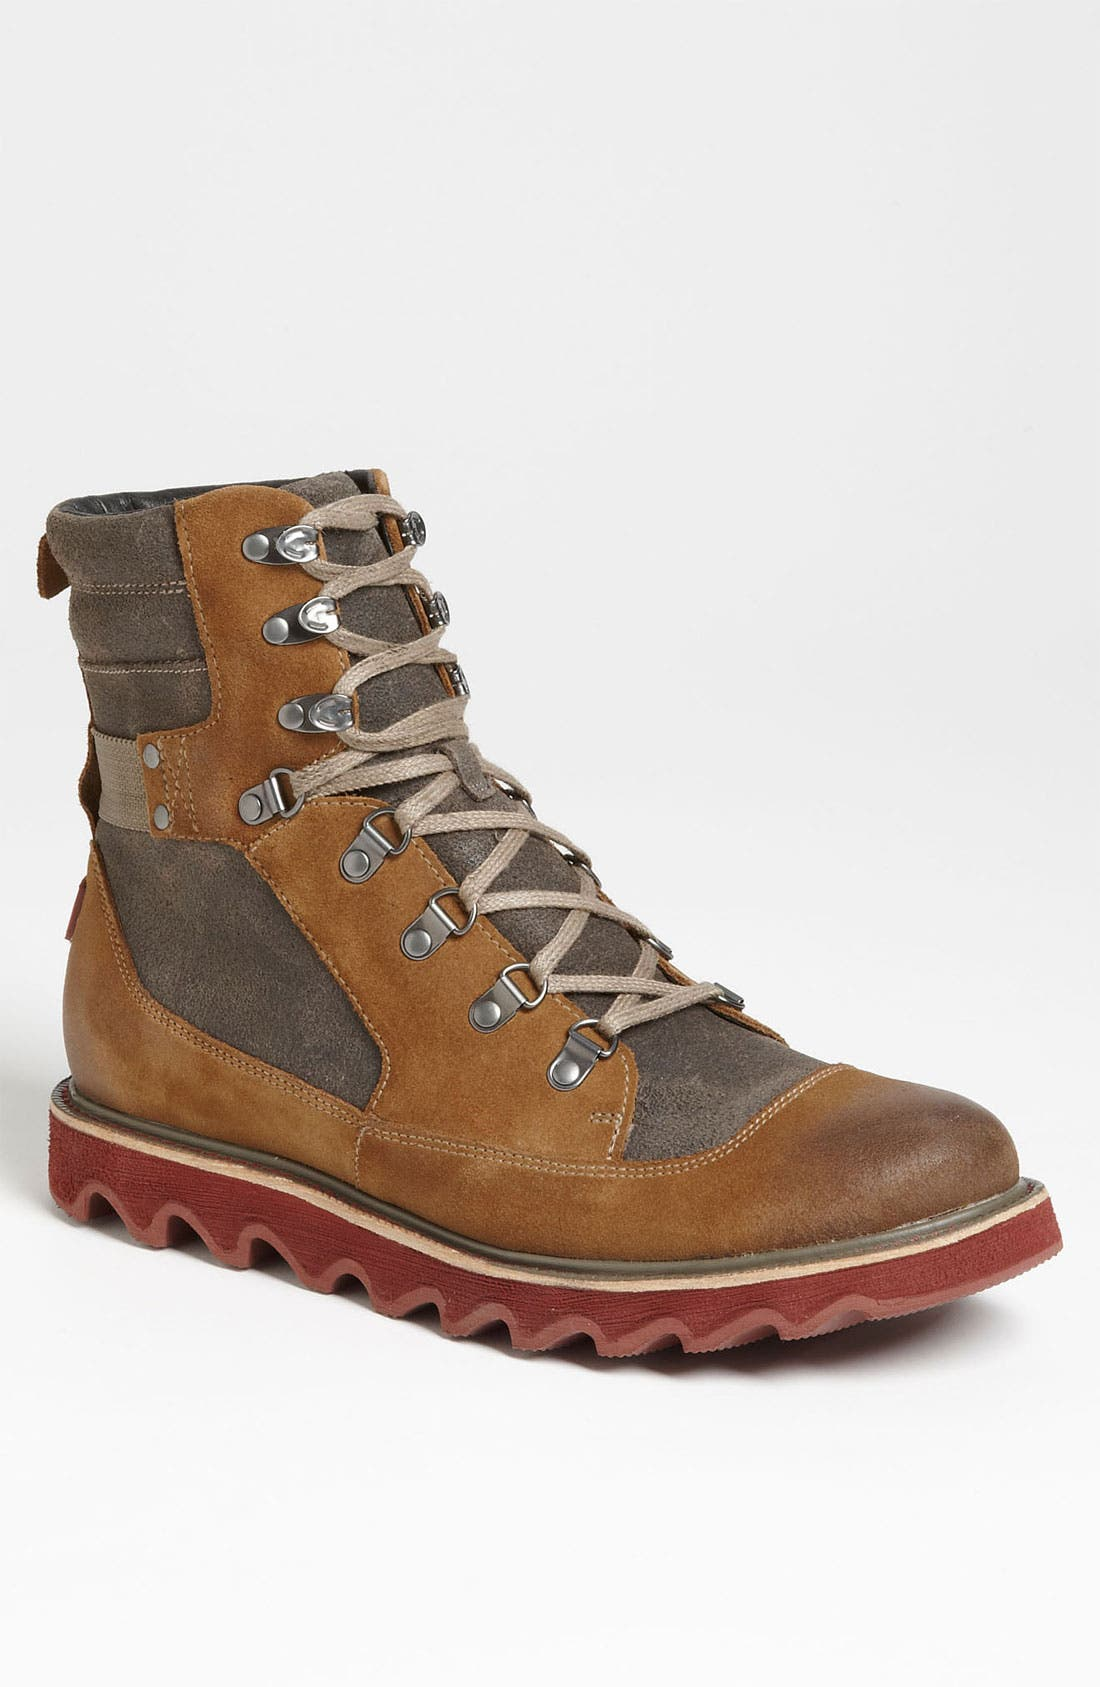 Alternate Image 1 Selected - SOREL 'Mad Mukluk' Boot